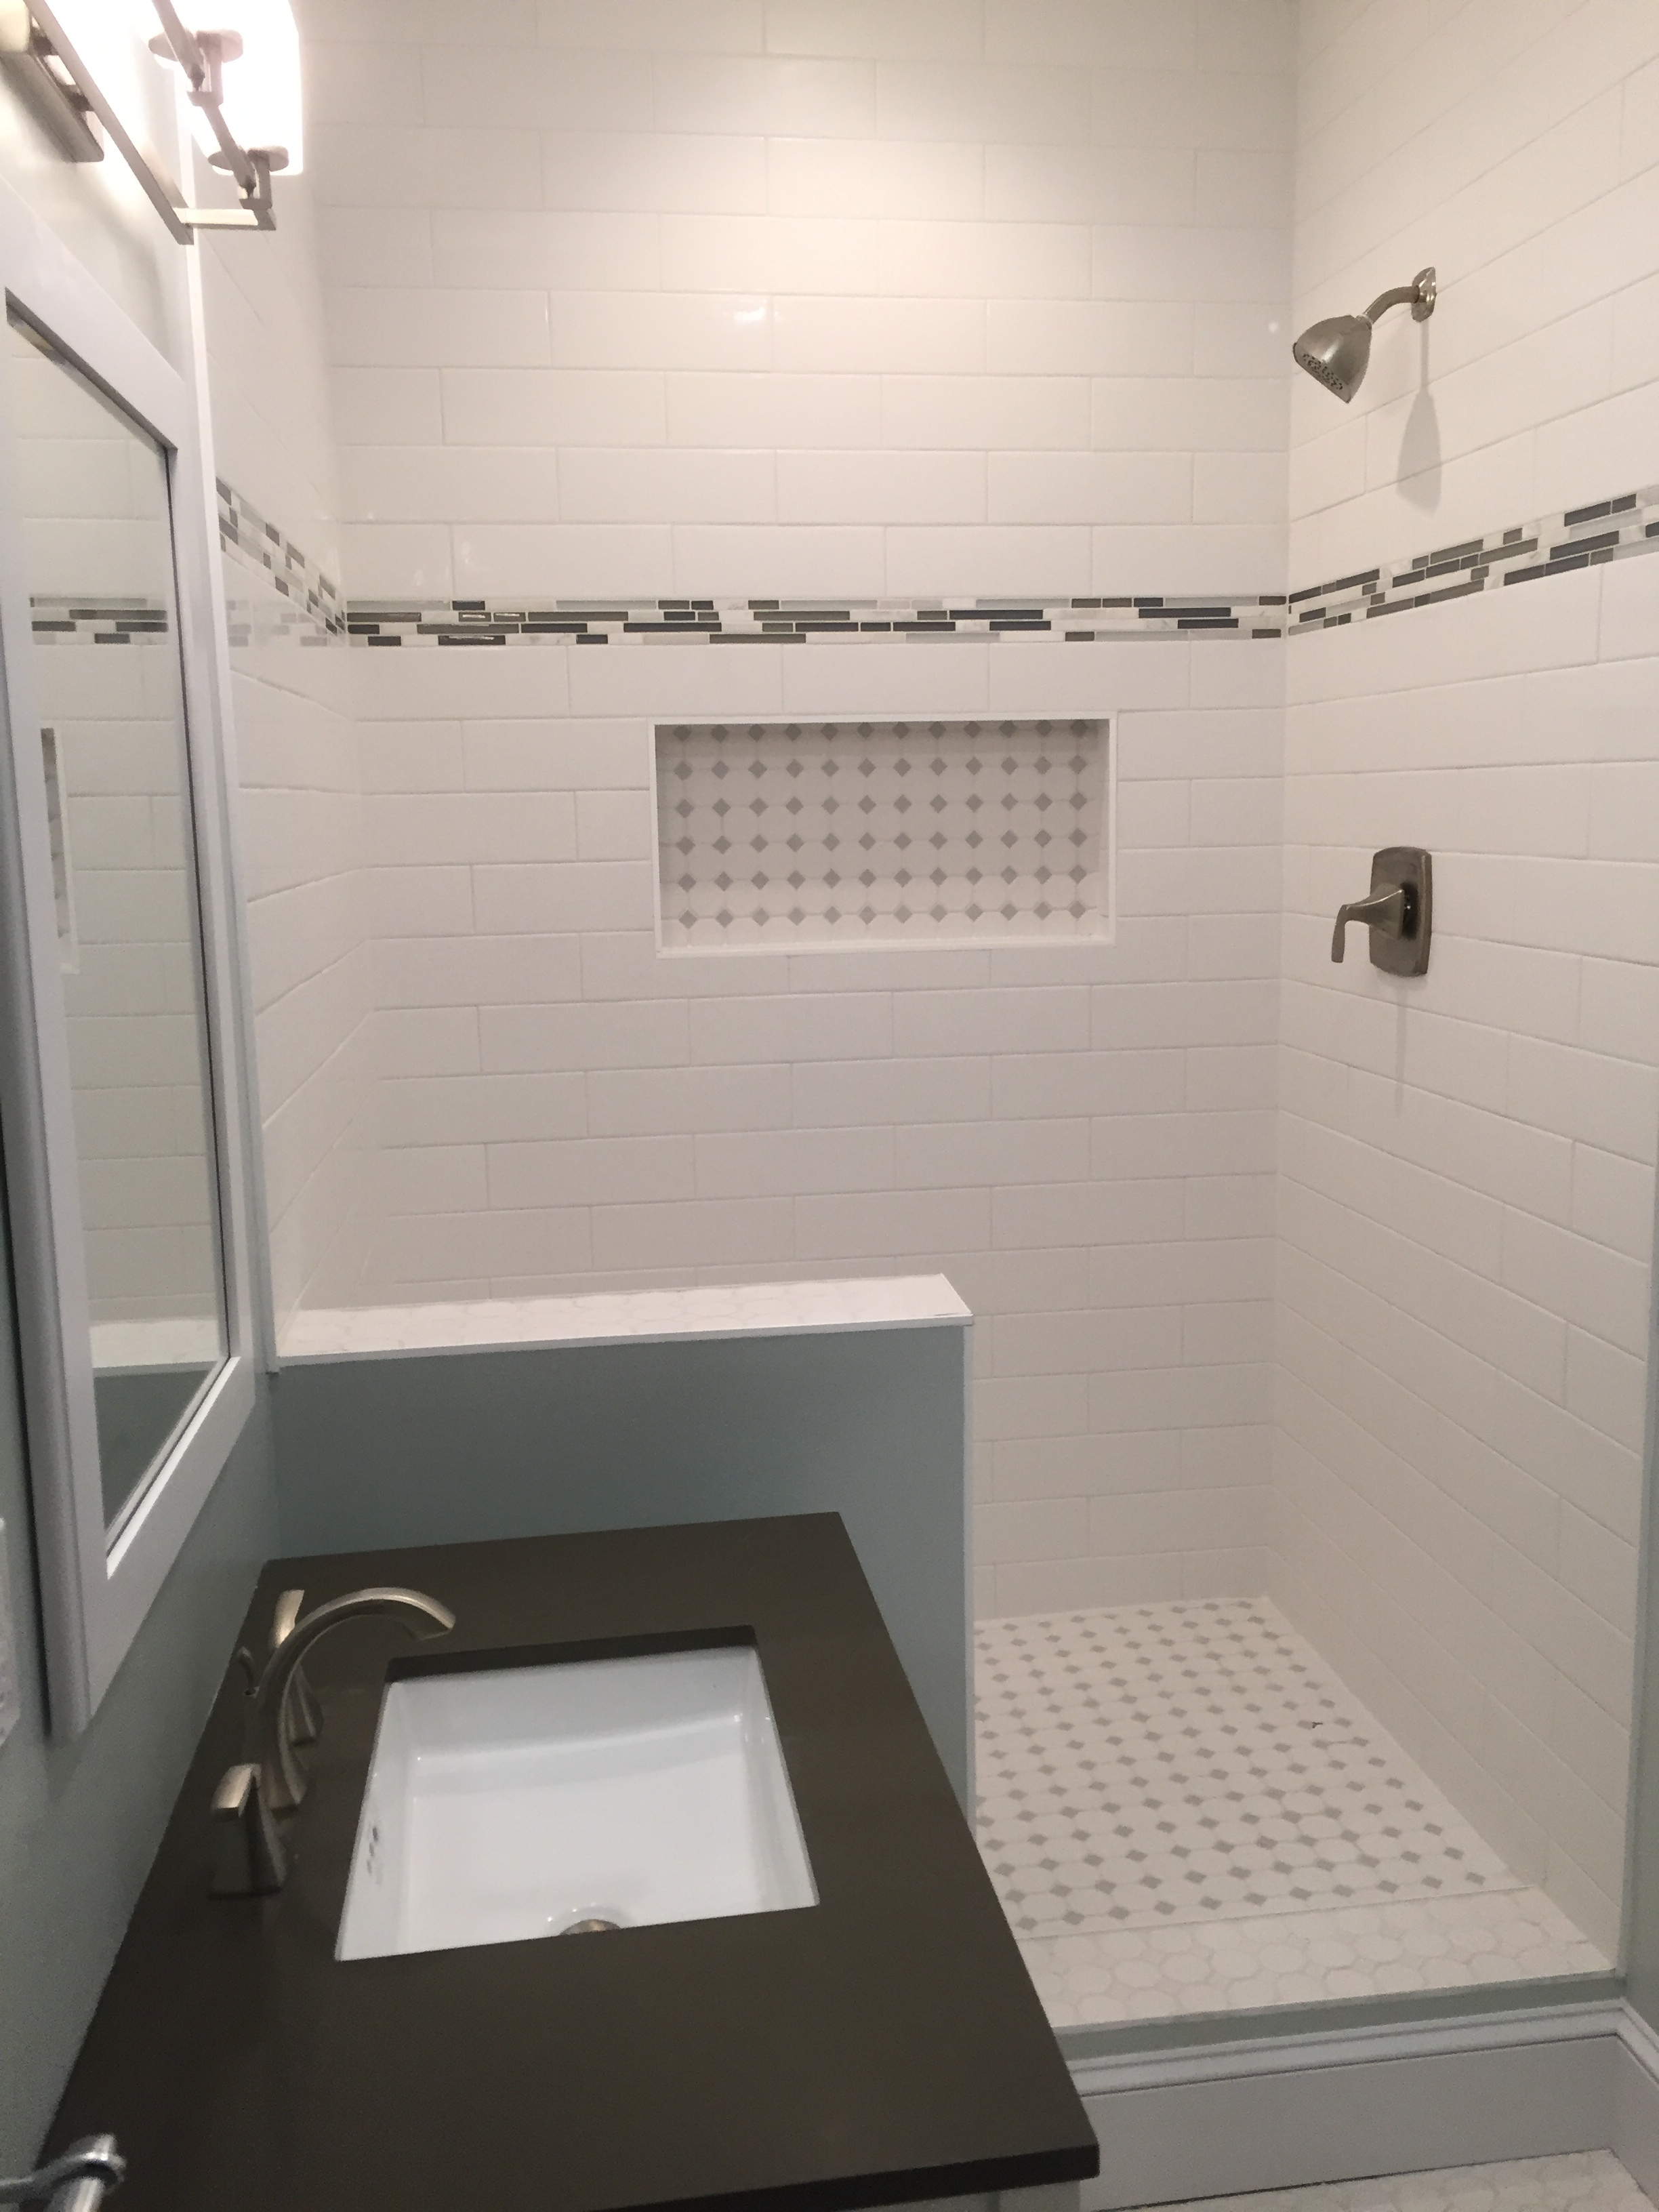 Basement Finish with Bathroom Remodel in Essex CT | Shaw Remodeling